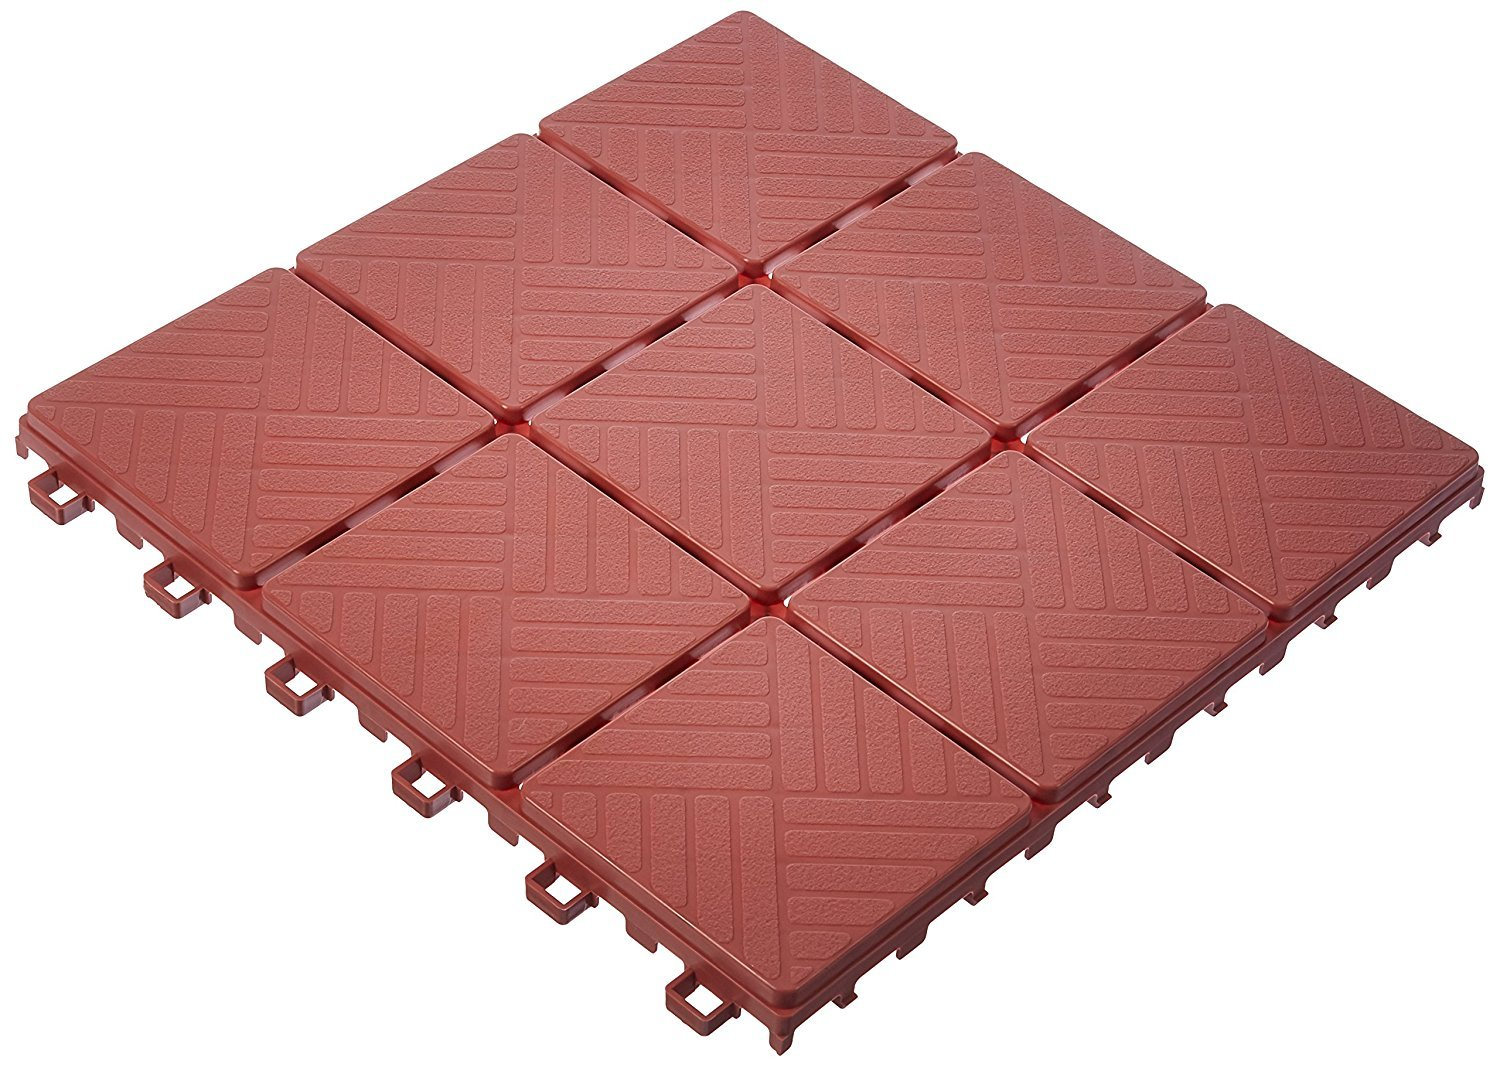 Imperial Home Interlocking Deck Tile Patio Pavers, 11 x 11 Easy Set Up Outdoor Walkway Pavers (Set of 12) (Brick Color)